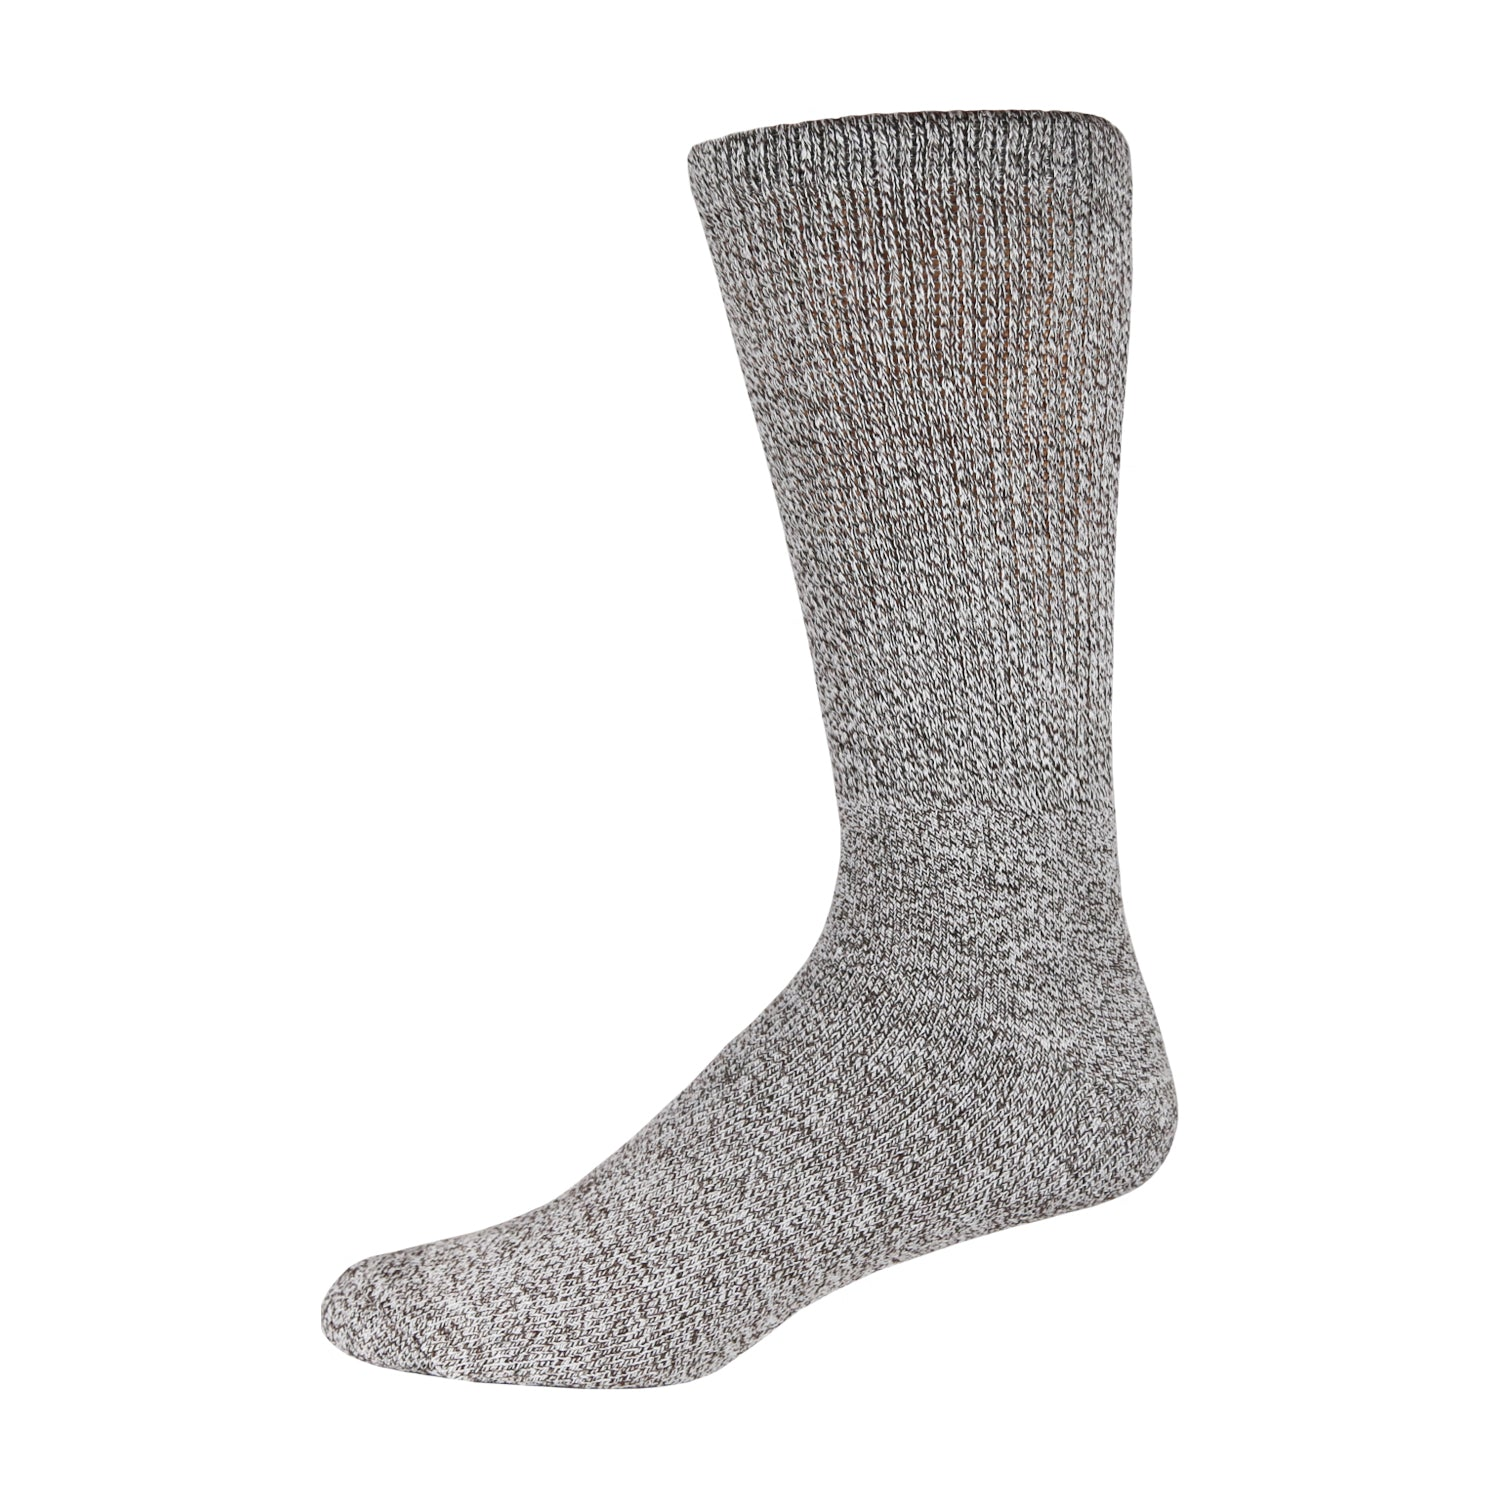 Light Grey Marled Boot Sock For Diabetics